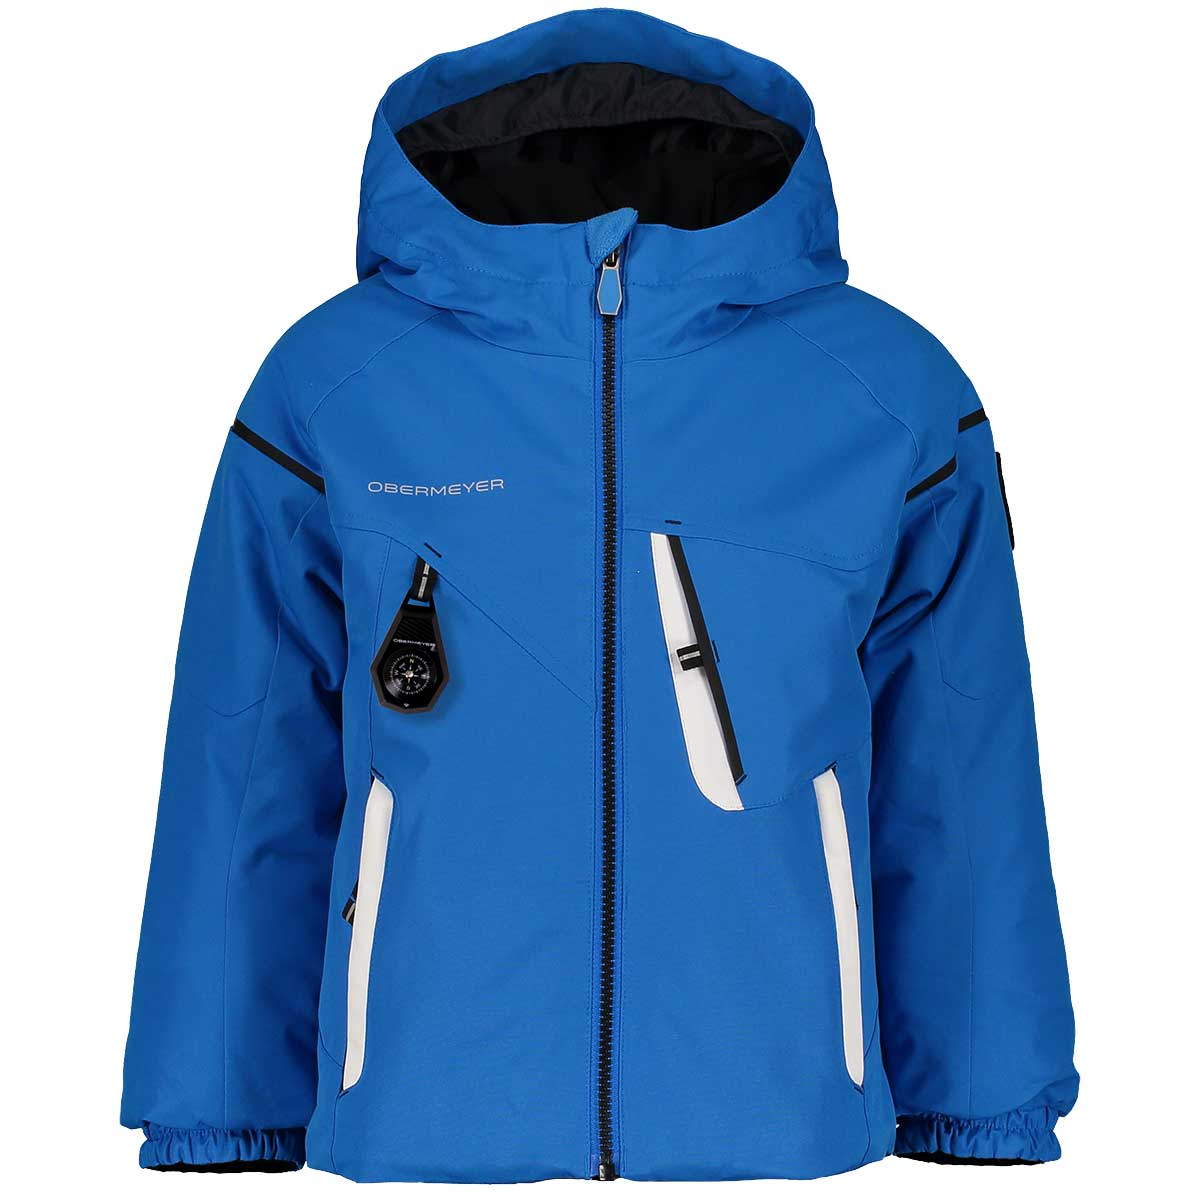 Obermeyer boys' ORB Jacket in Blue Vibes front view